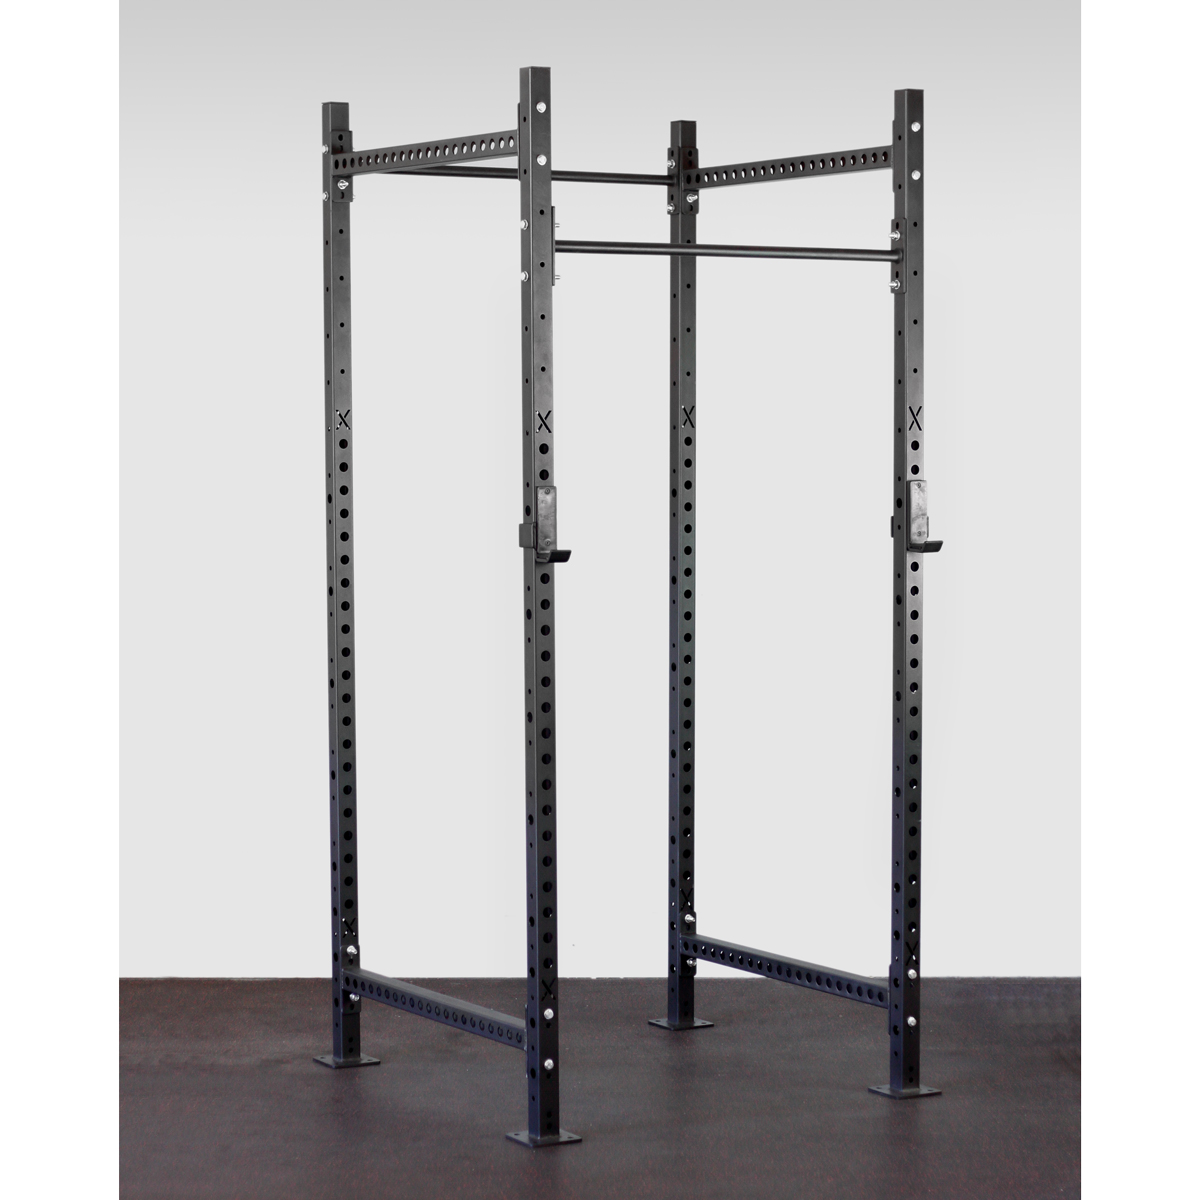 X Training Equipment® 4x4 Elite Power Rack - Pre-Order Now - ETA 10/31